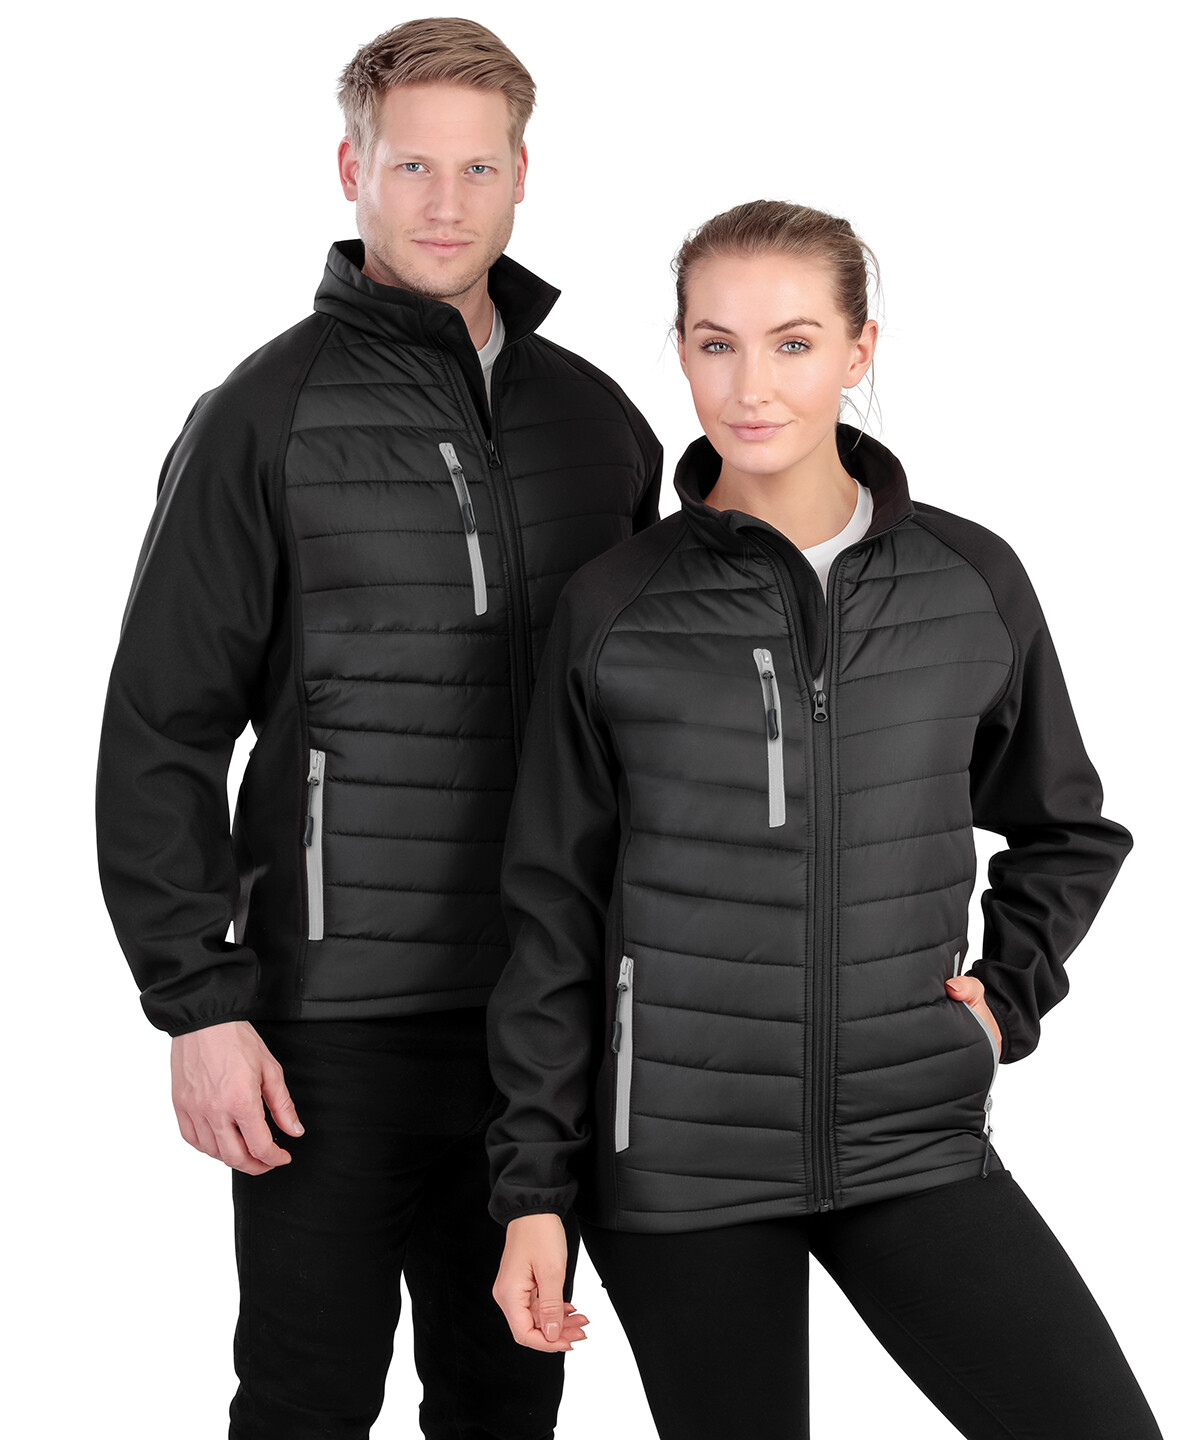 5X R237X Padded Softshell Jacket + FREE EMBROIDERY (BREAST)